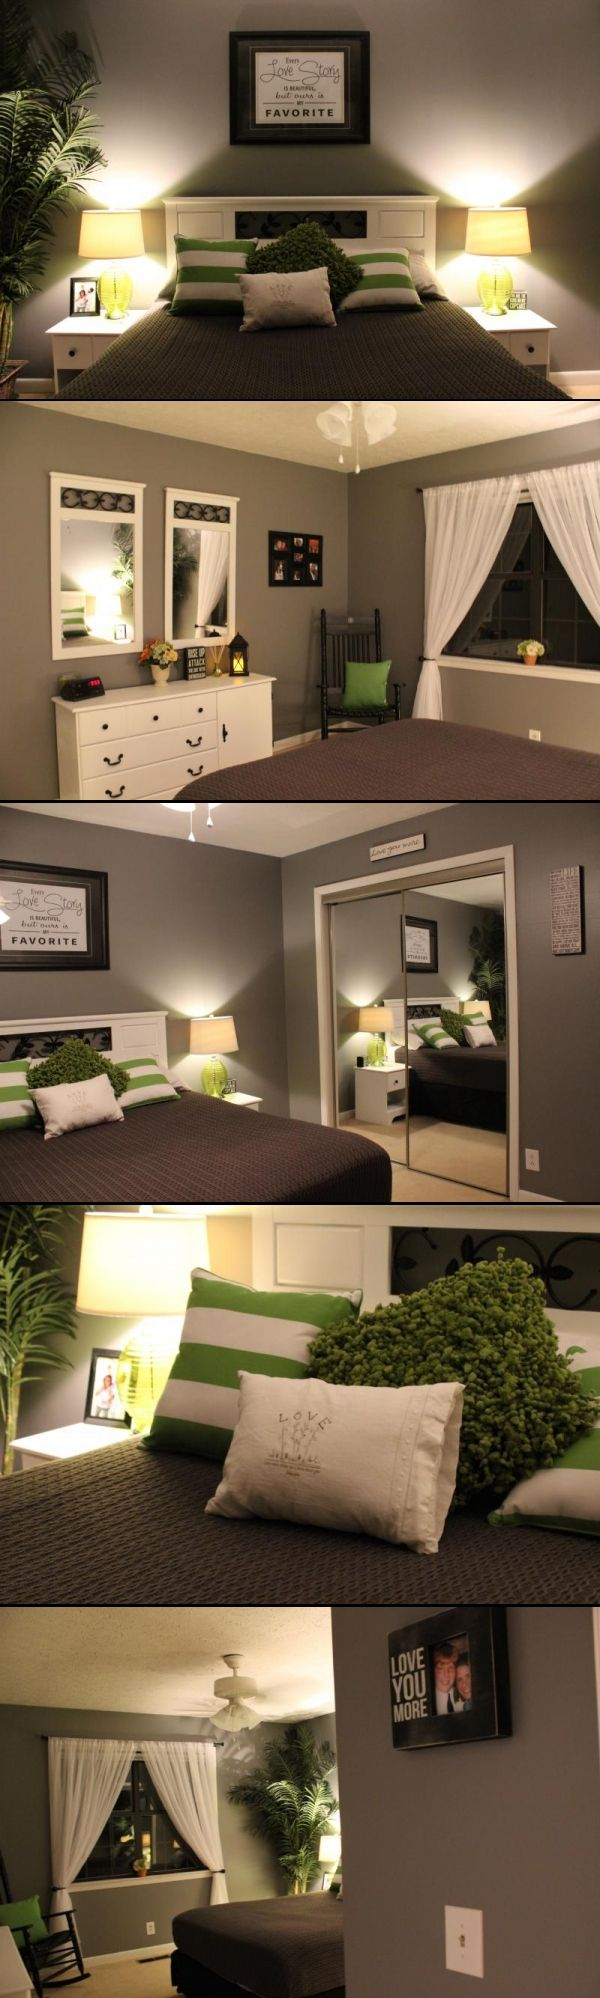 Gray and Green Bedroom  i like the color schemeBest 25  Grey brown bedrooms ideas only on Pinterest   Brown color  . Grey Brown Paint. Home Design Ideas